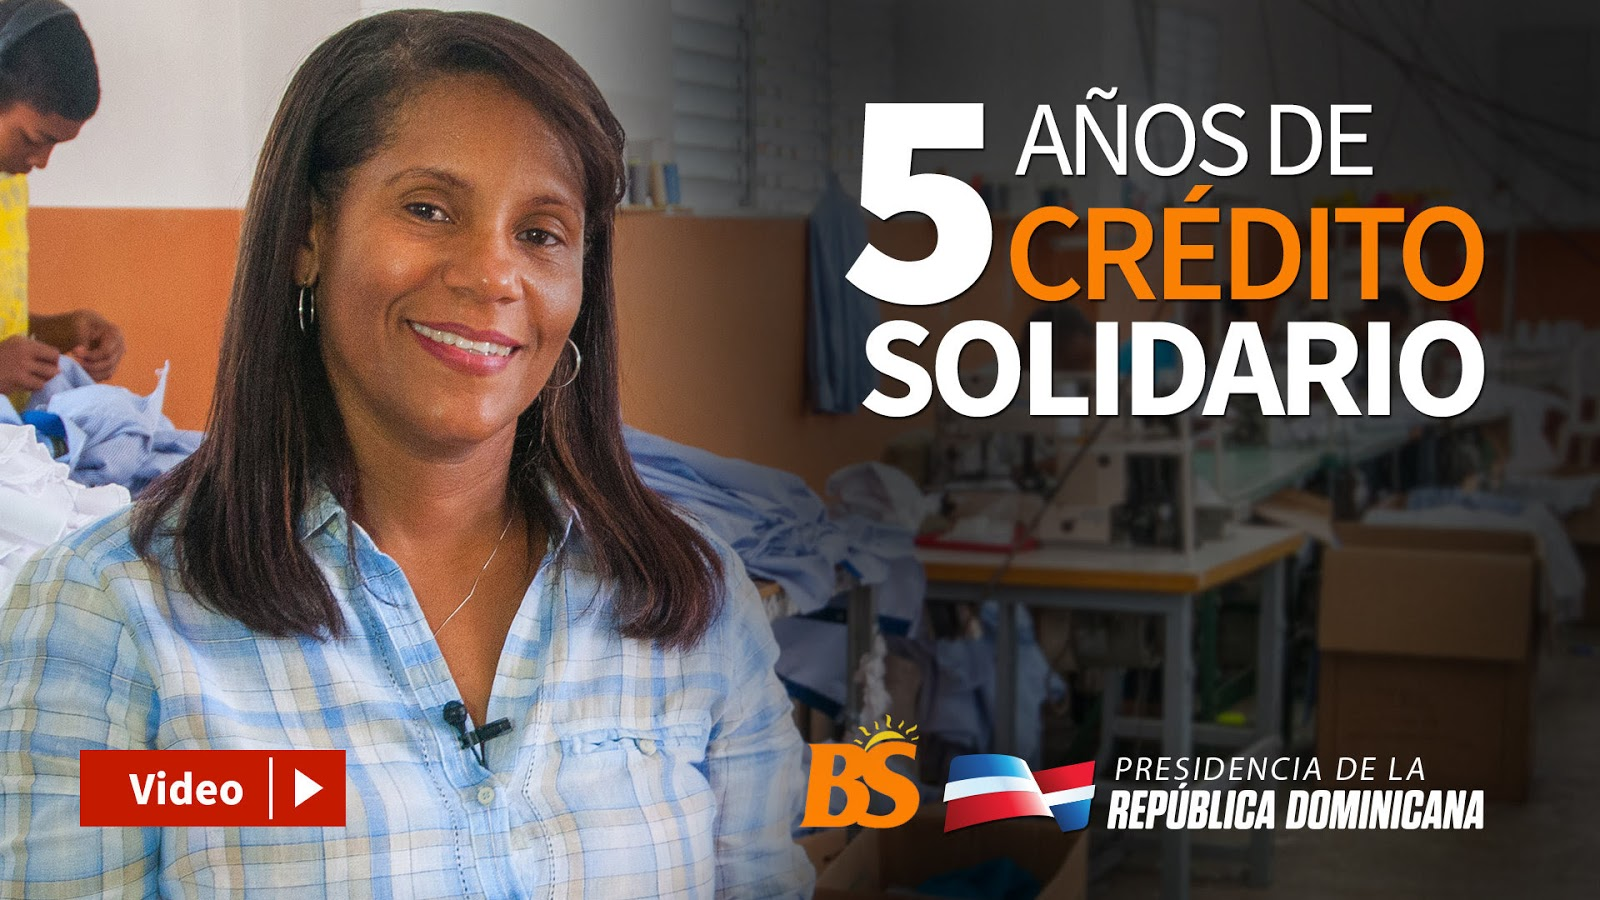 VIDEO: 5 años de crédito solidario